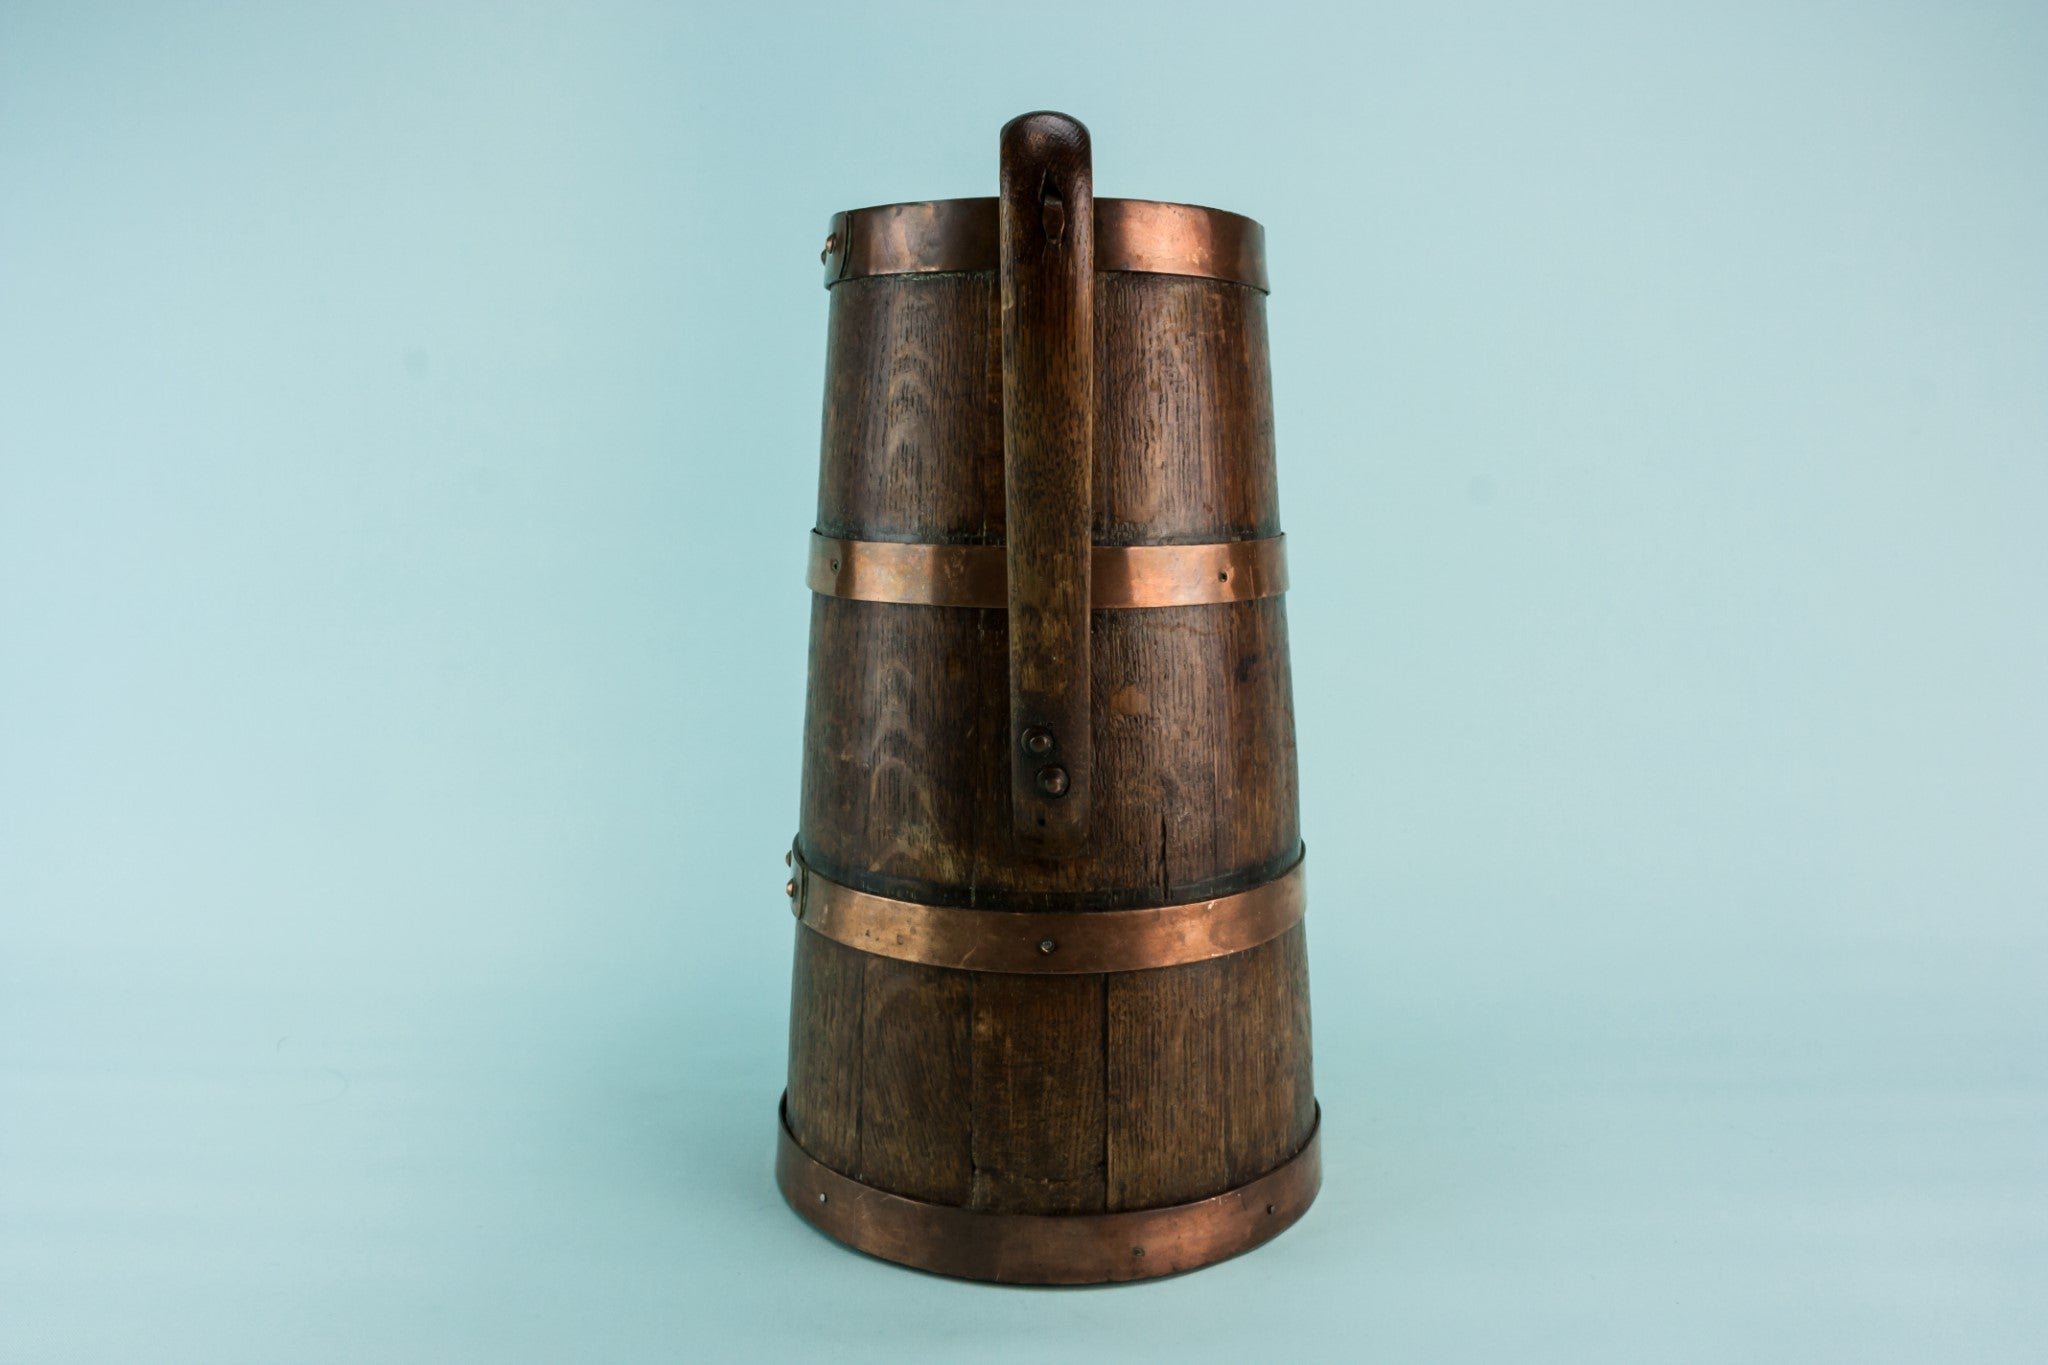 Coopered wooden jar